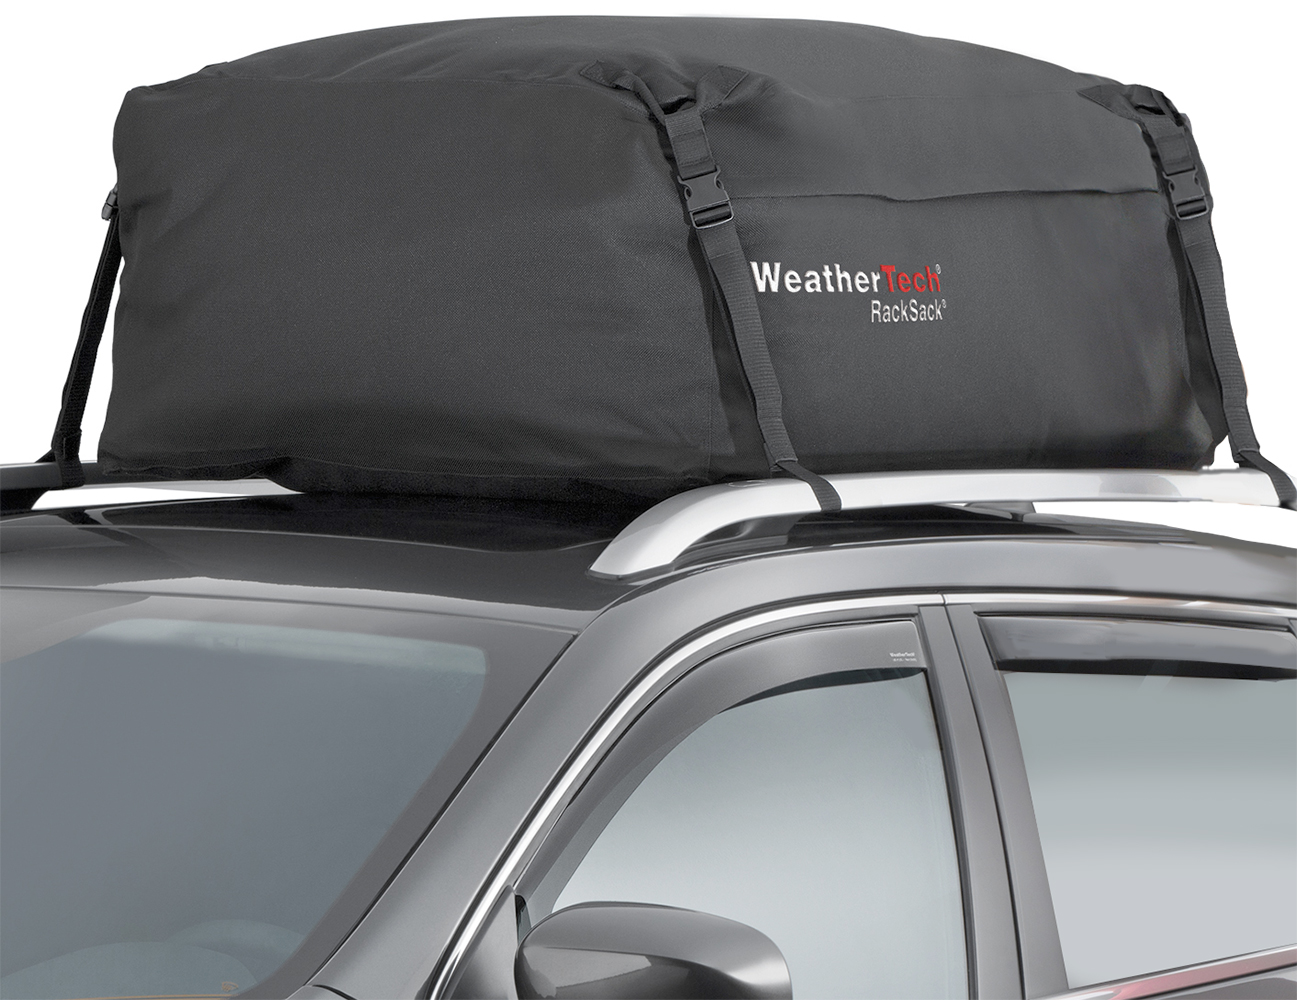 WeatherTech RackSack Roof Cargo Bag